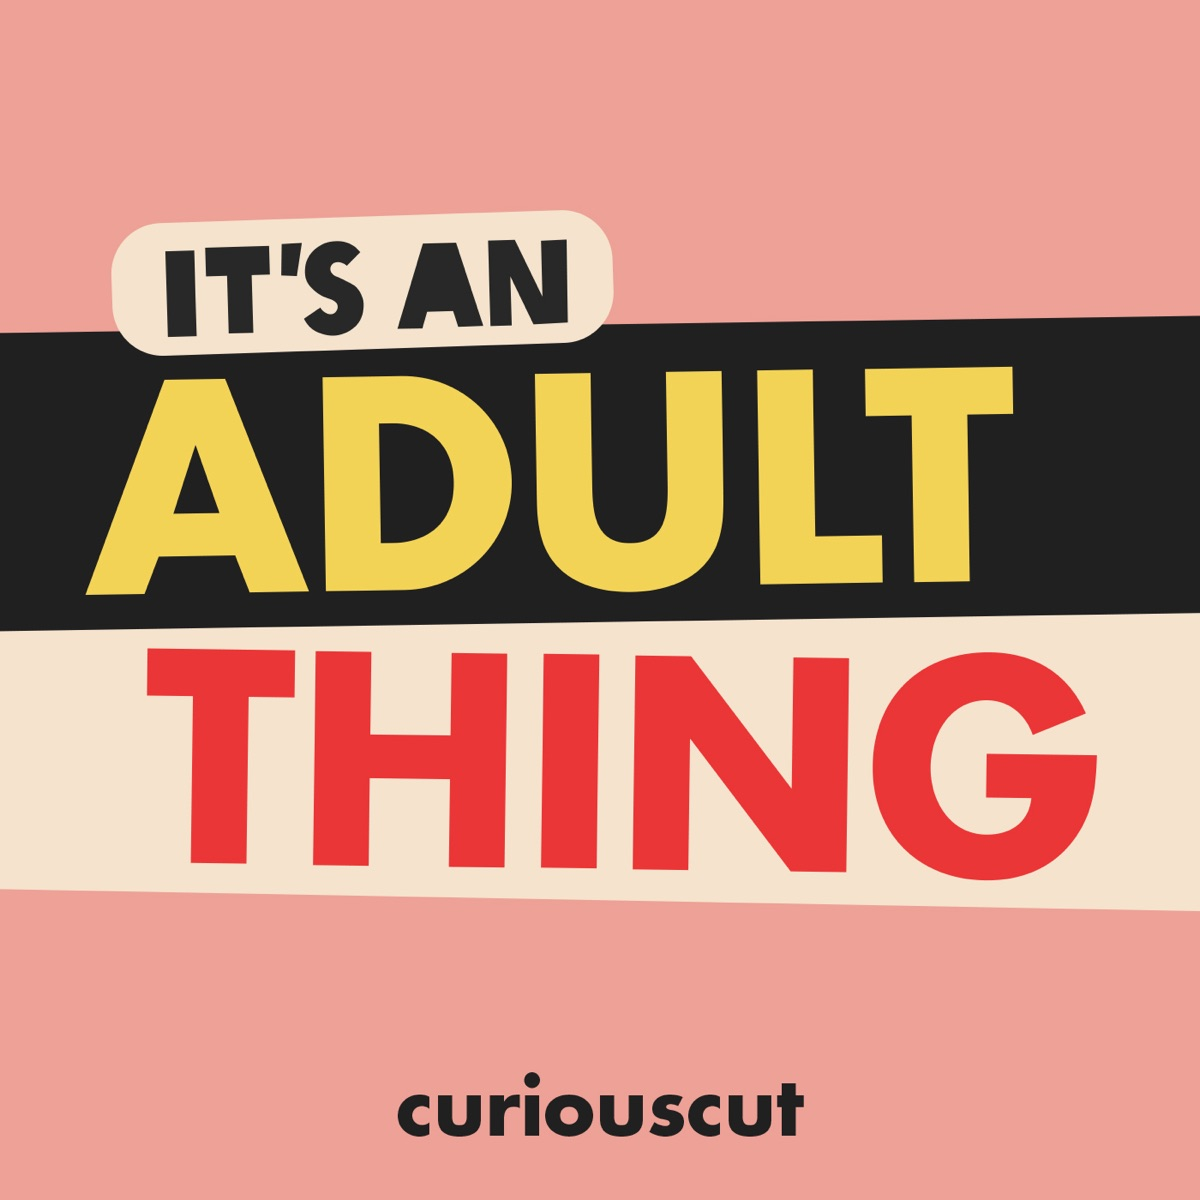 It's an Adult Thing!